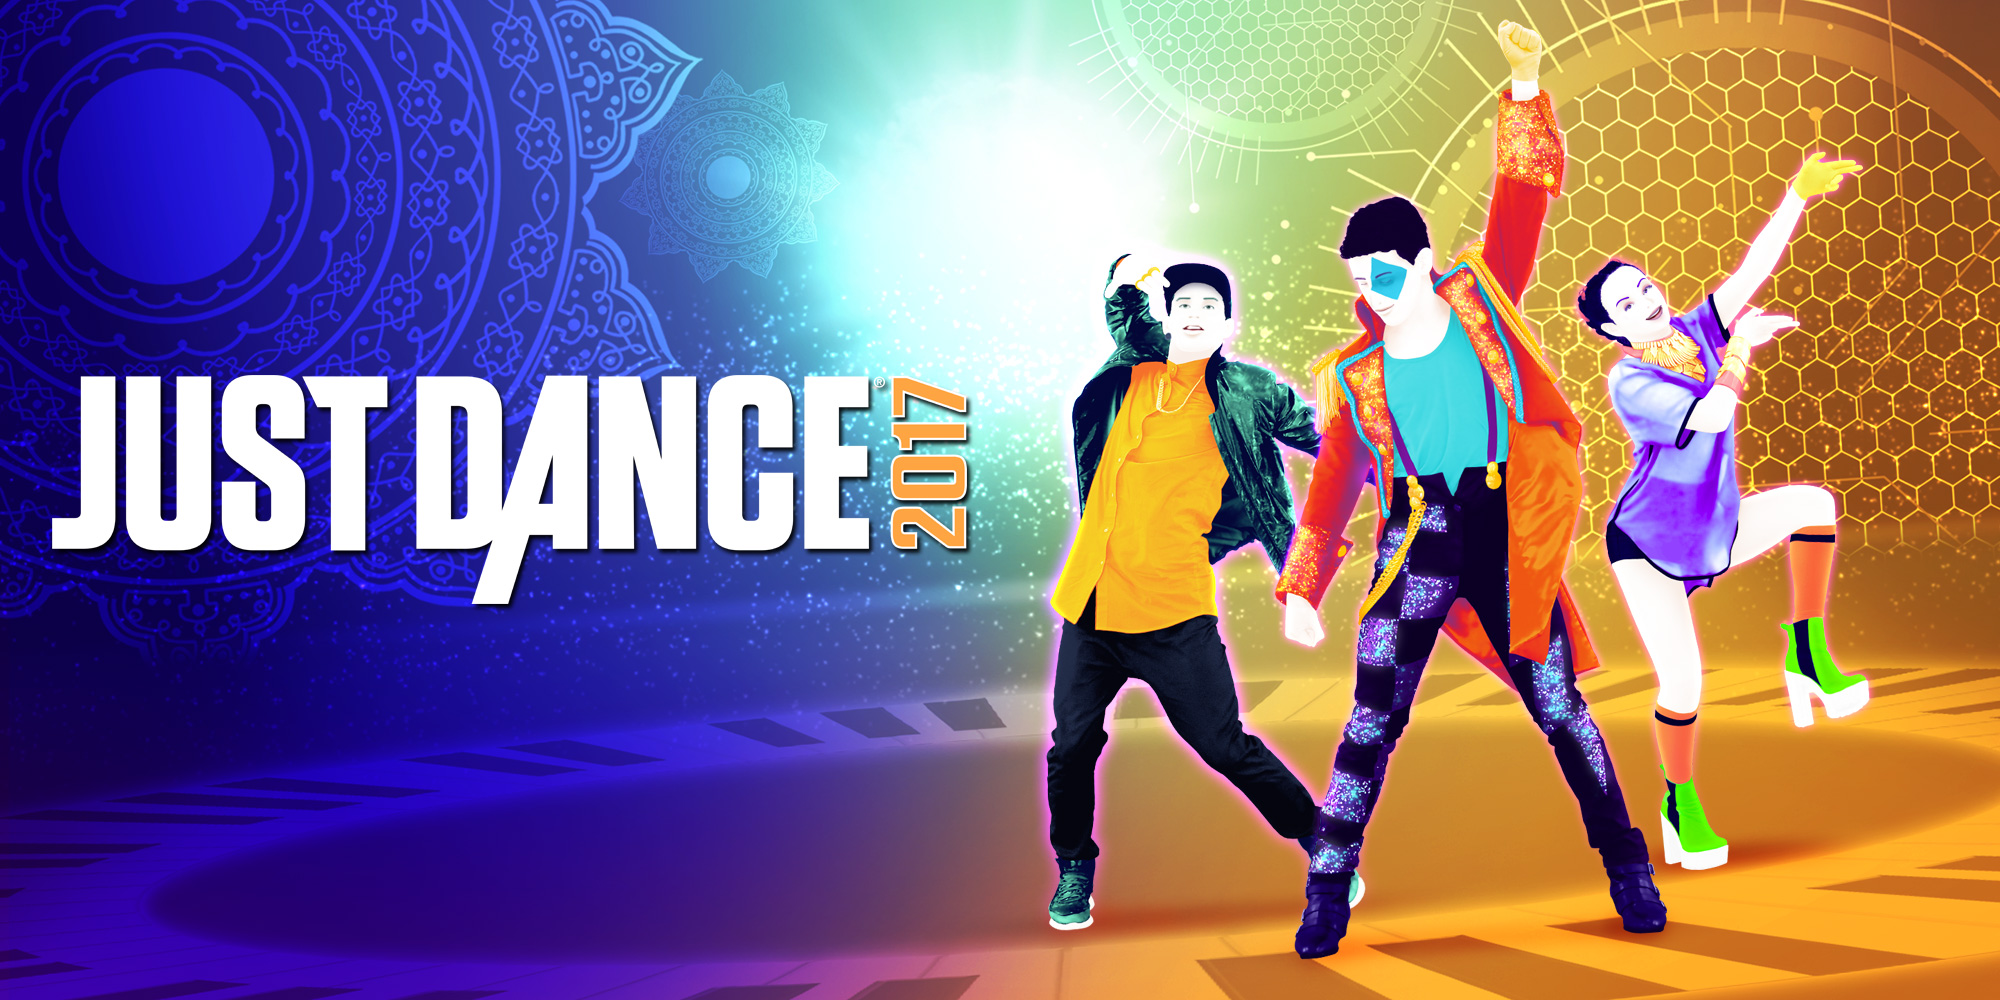 Disco clipart just dance Switch Just Dance 2017 Just